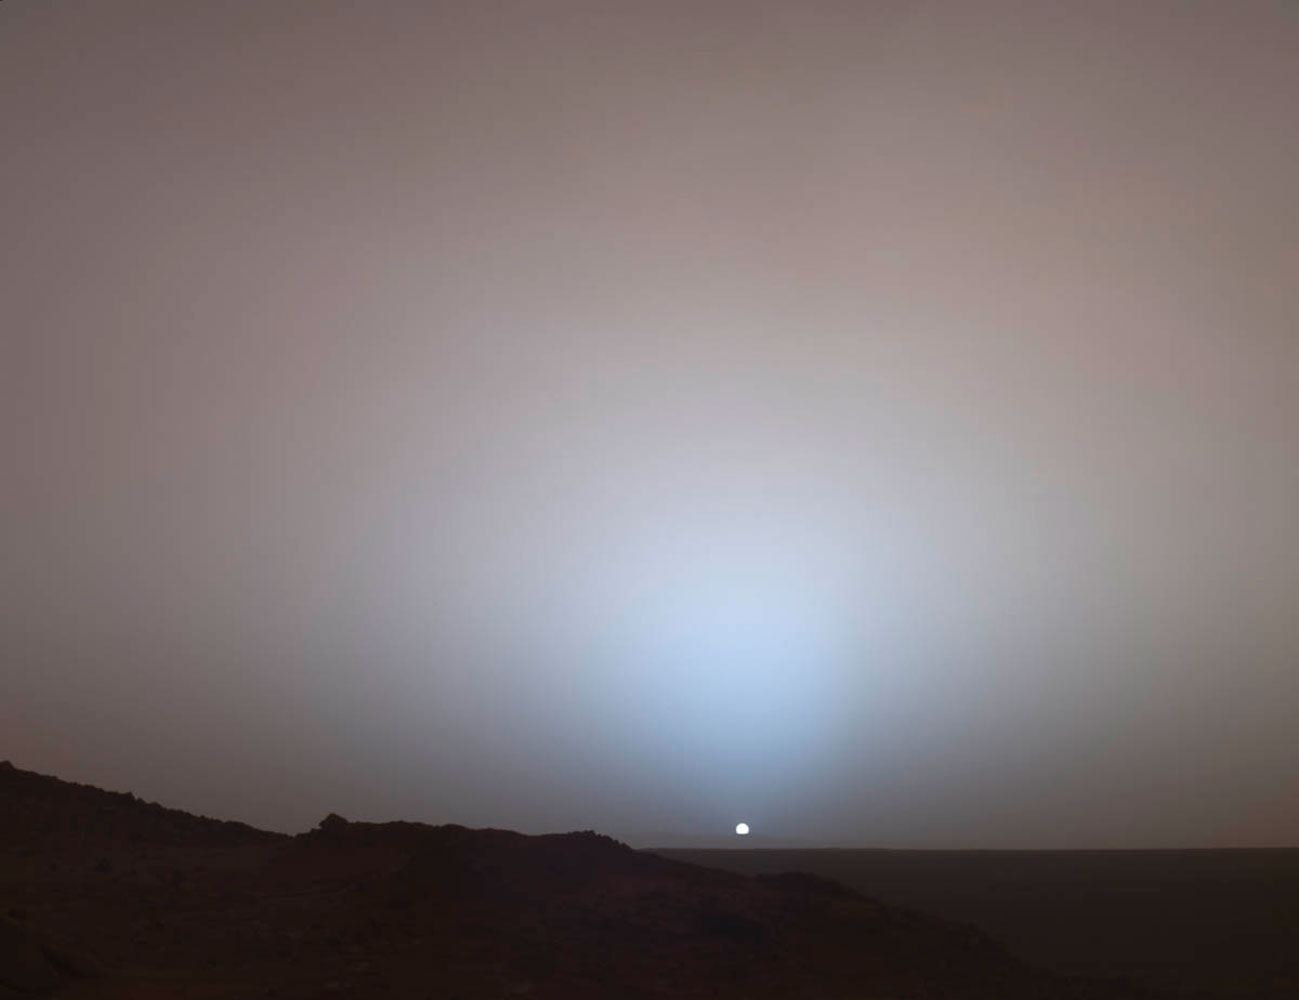 The Mars Rover Spirit took this sublime view of a sunset over the rim of Gusev Crater, about 80 kilometers (50 miles) away.